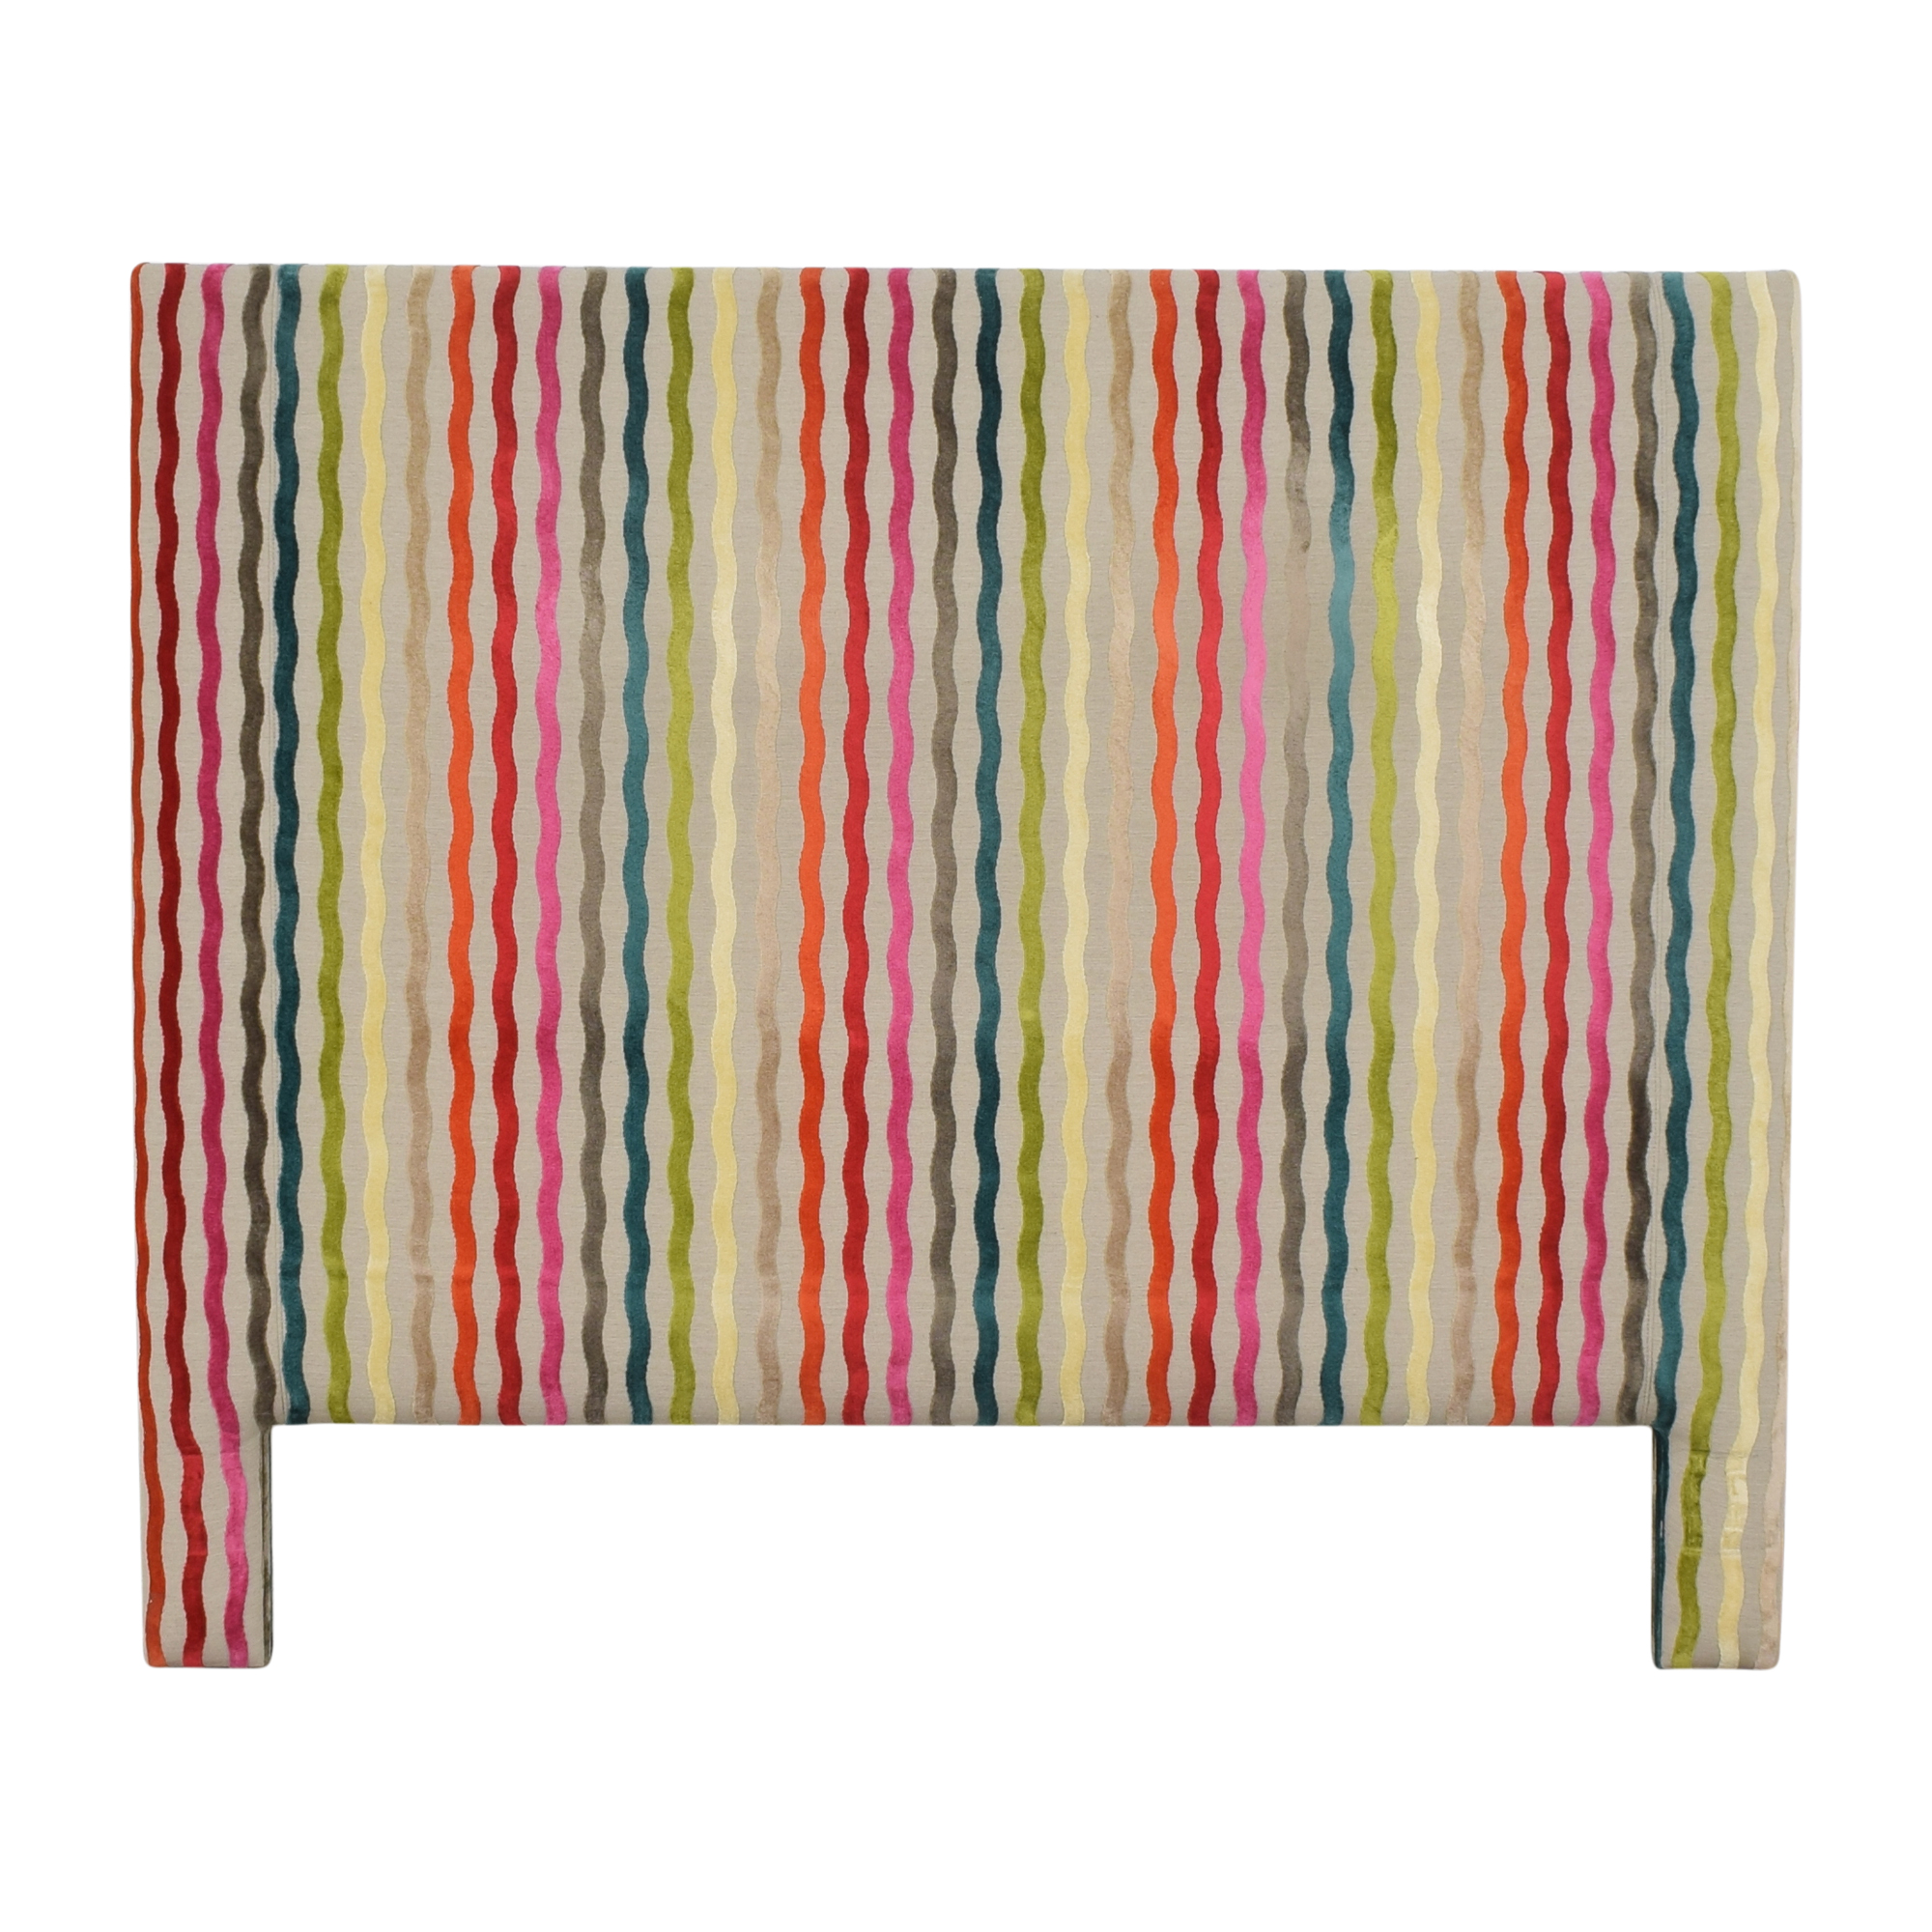 Kravet Kravet Striped Queen Headboard